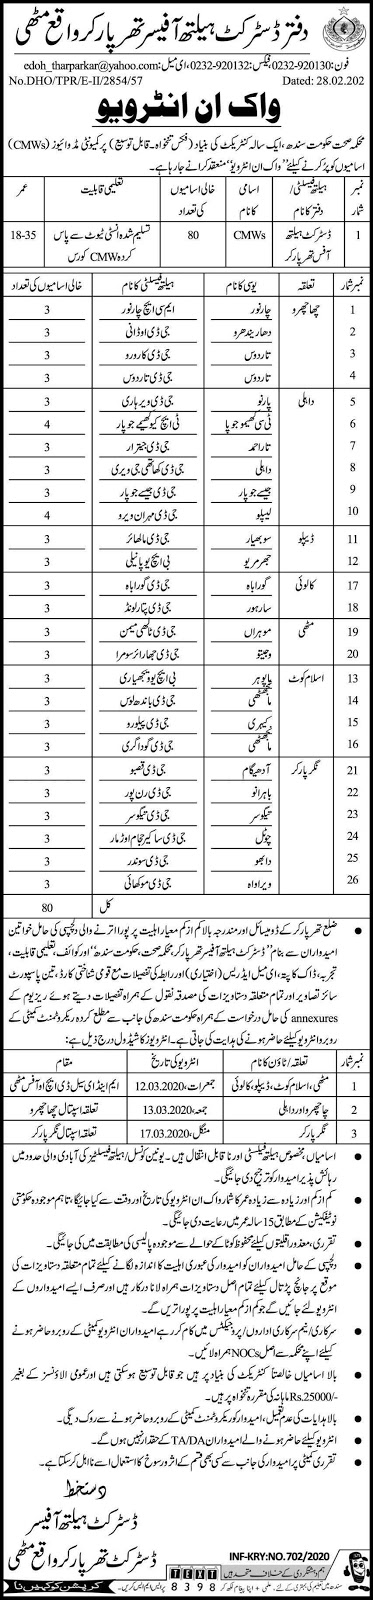 Latest Walk-In Interview Office of the District Health Officer Jobs 2020 Salary 25,000/-